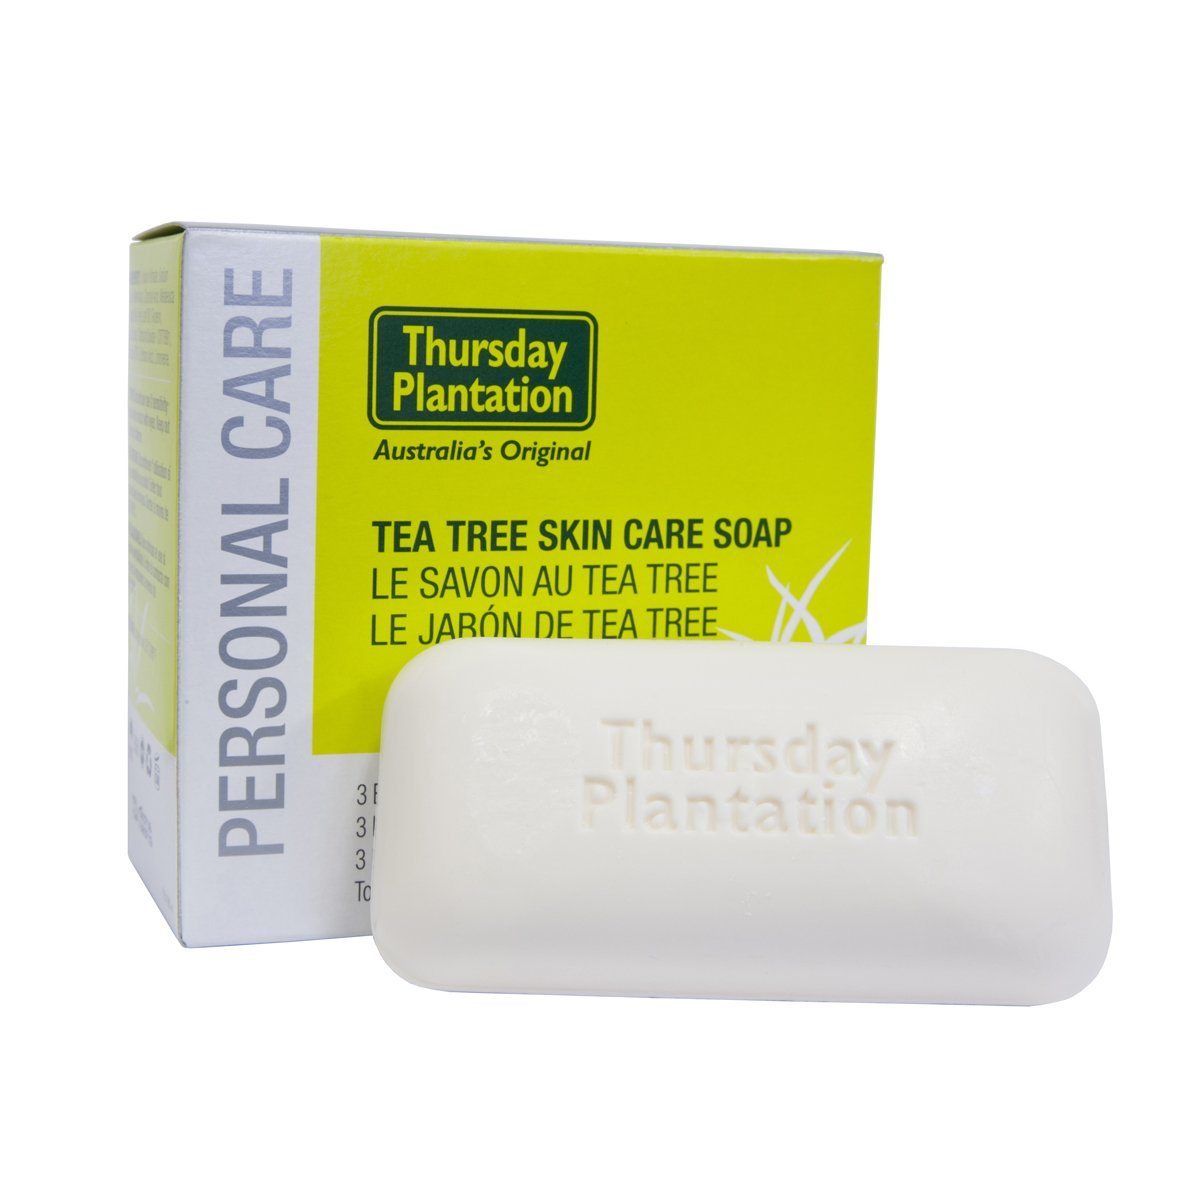 Thursday Plantation Tea Tree Skin Care Soap, 345g